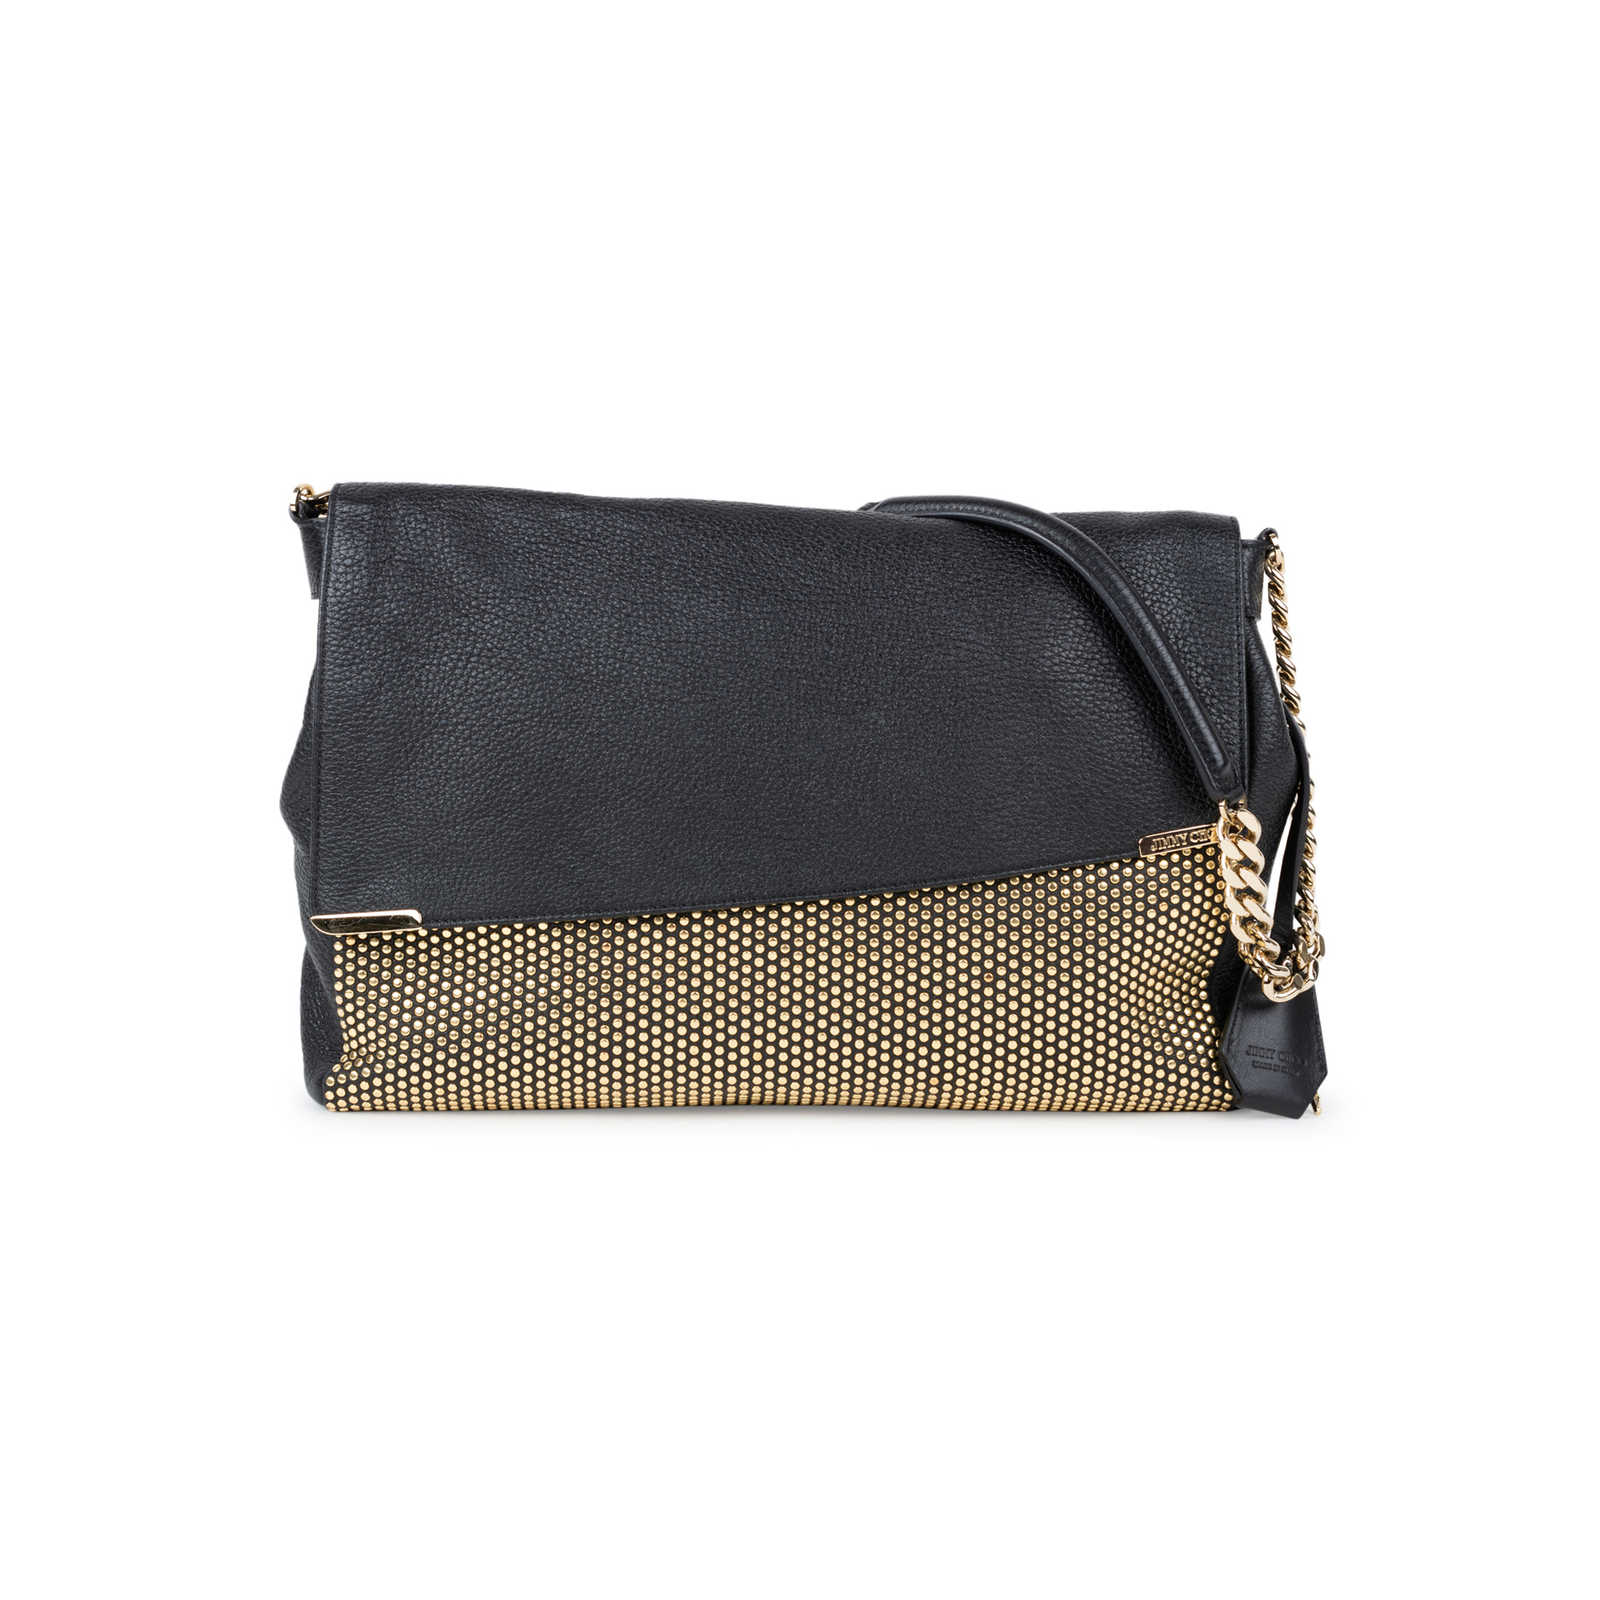 986938d79d0 Authentic Second Hand Jimmy Choo Ally Studded Shoulder Bag (PSS-557-00003)  ...